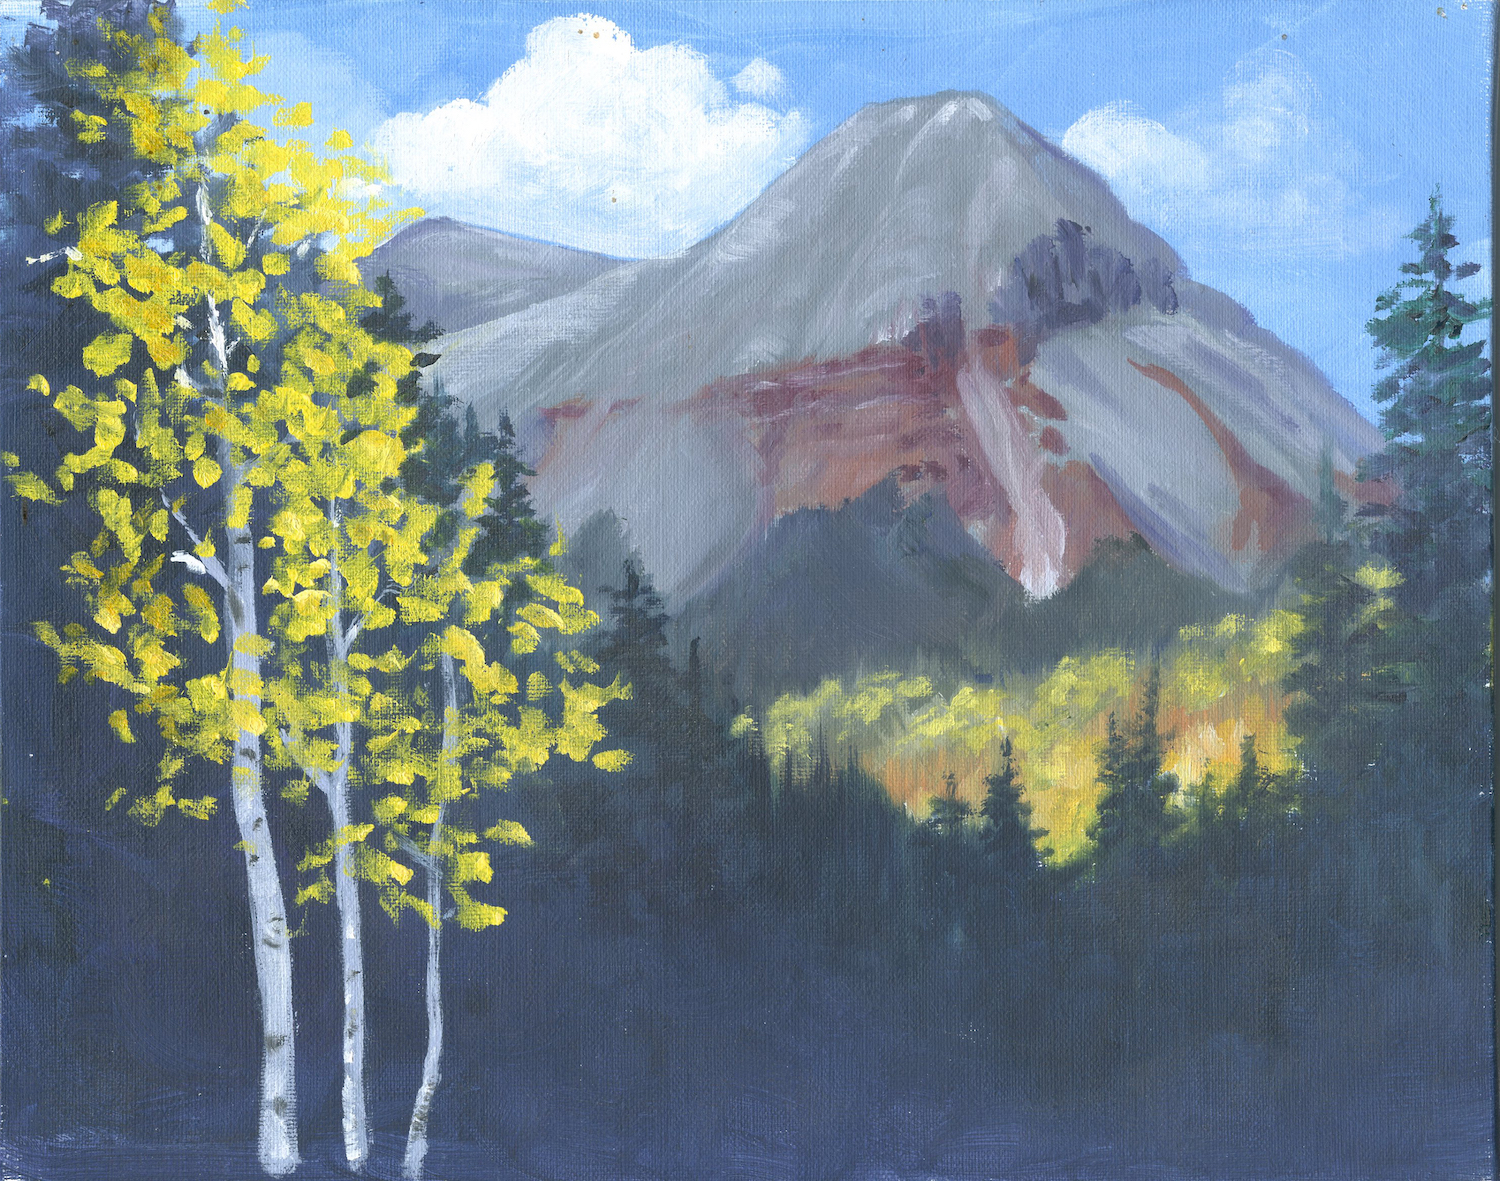 Engineer Mountain, Colorado by artist Eileen Fjerstad